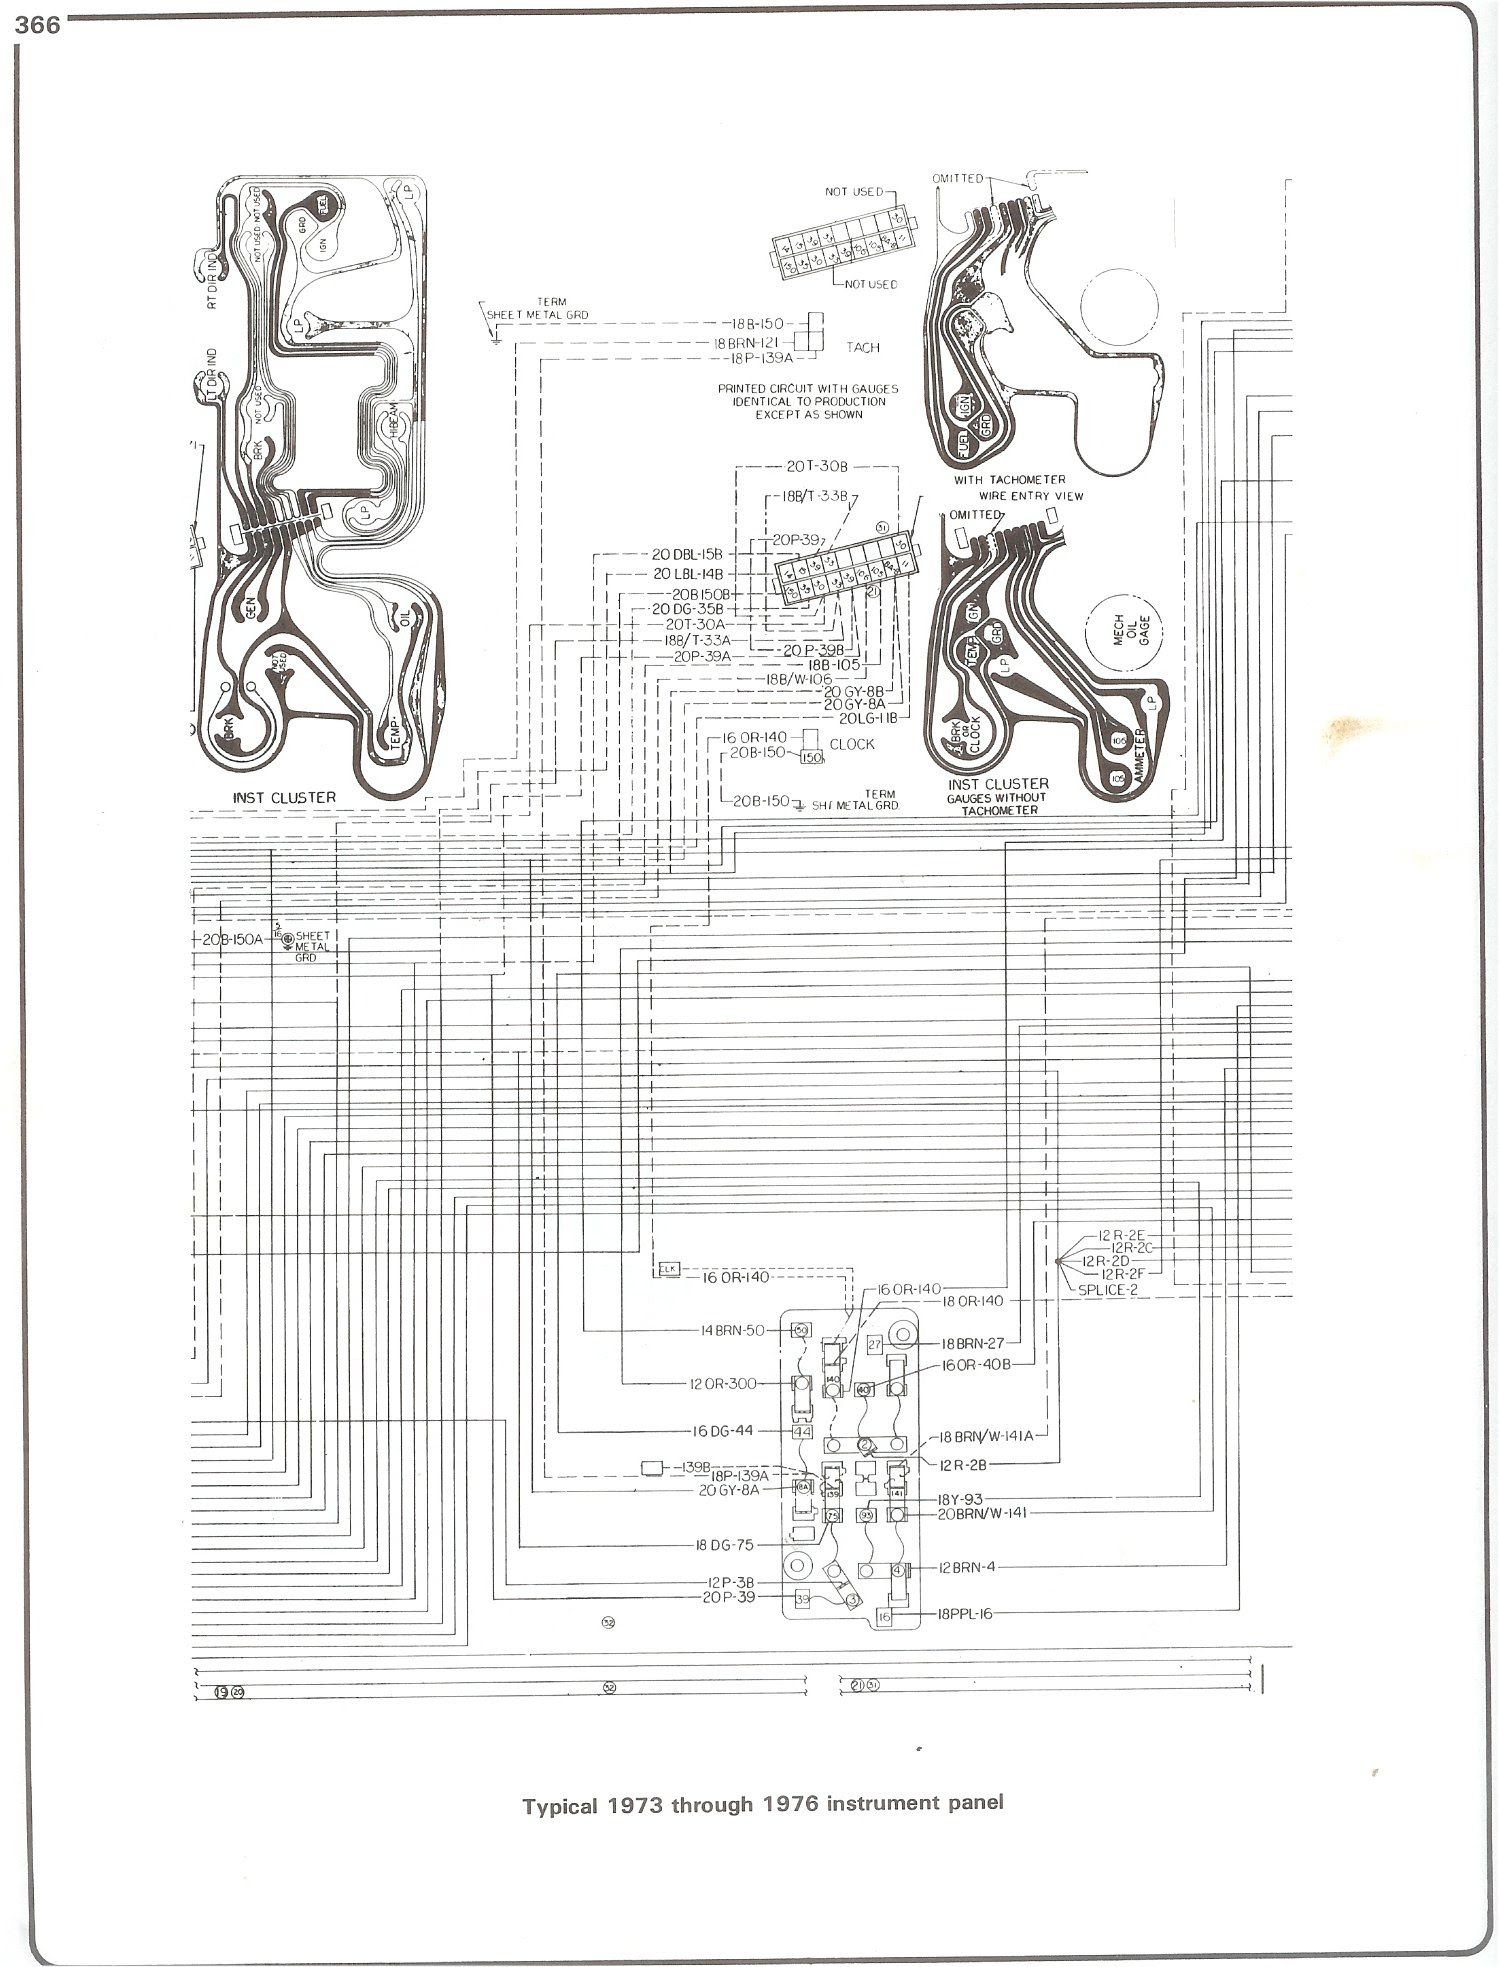 1937 Chevy Radio Wiring Diagram Schematic Wiring Diagram Motor A Motor A Frankmotors Es